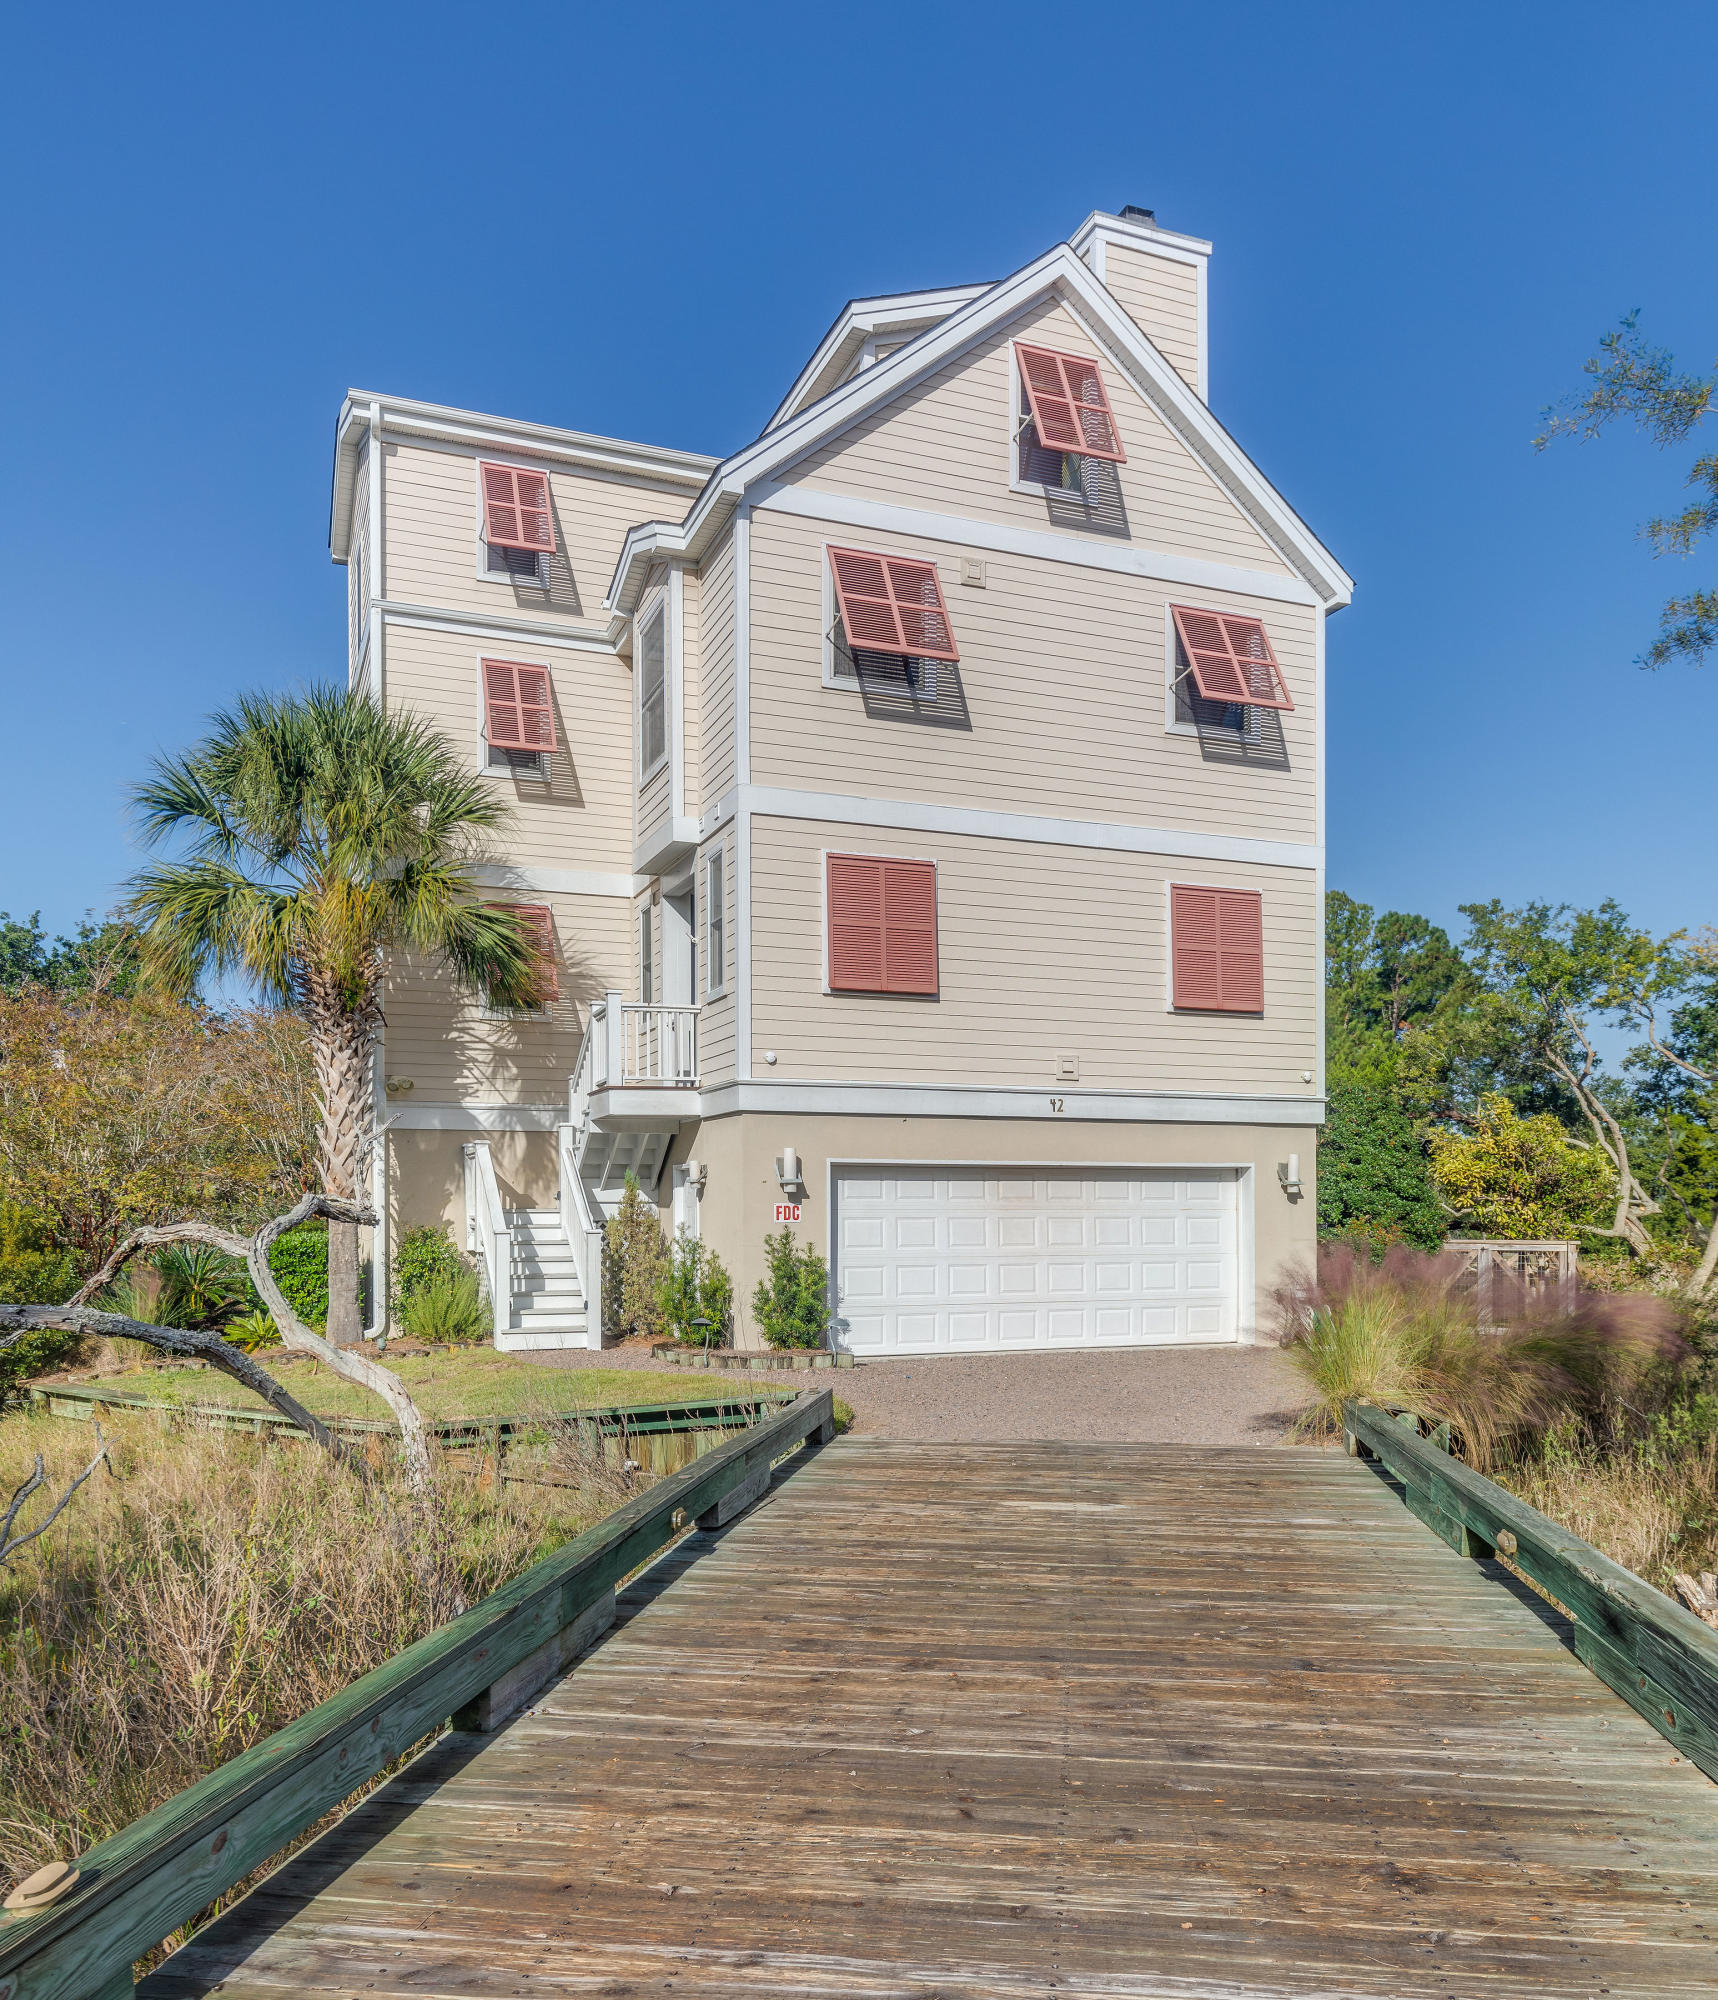 Wild Dunes Homes For Sale - 42 Seagrass, Isle of Palms, SC - 36